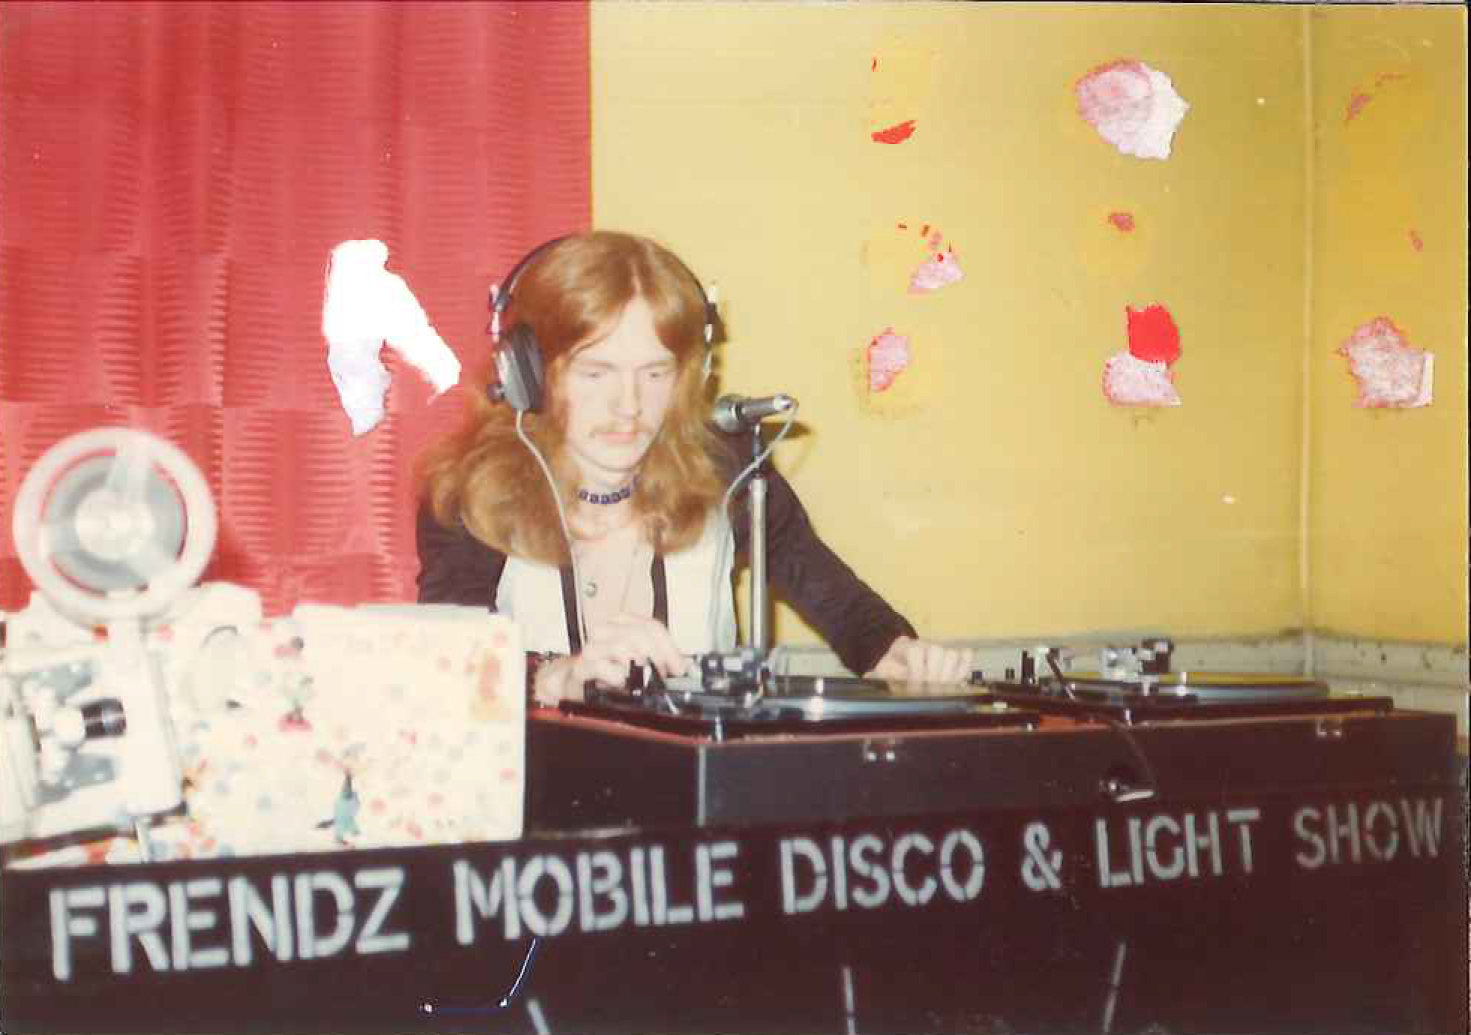 Frendz Mobile Disco